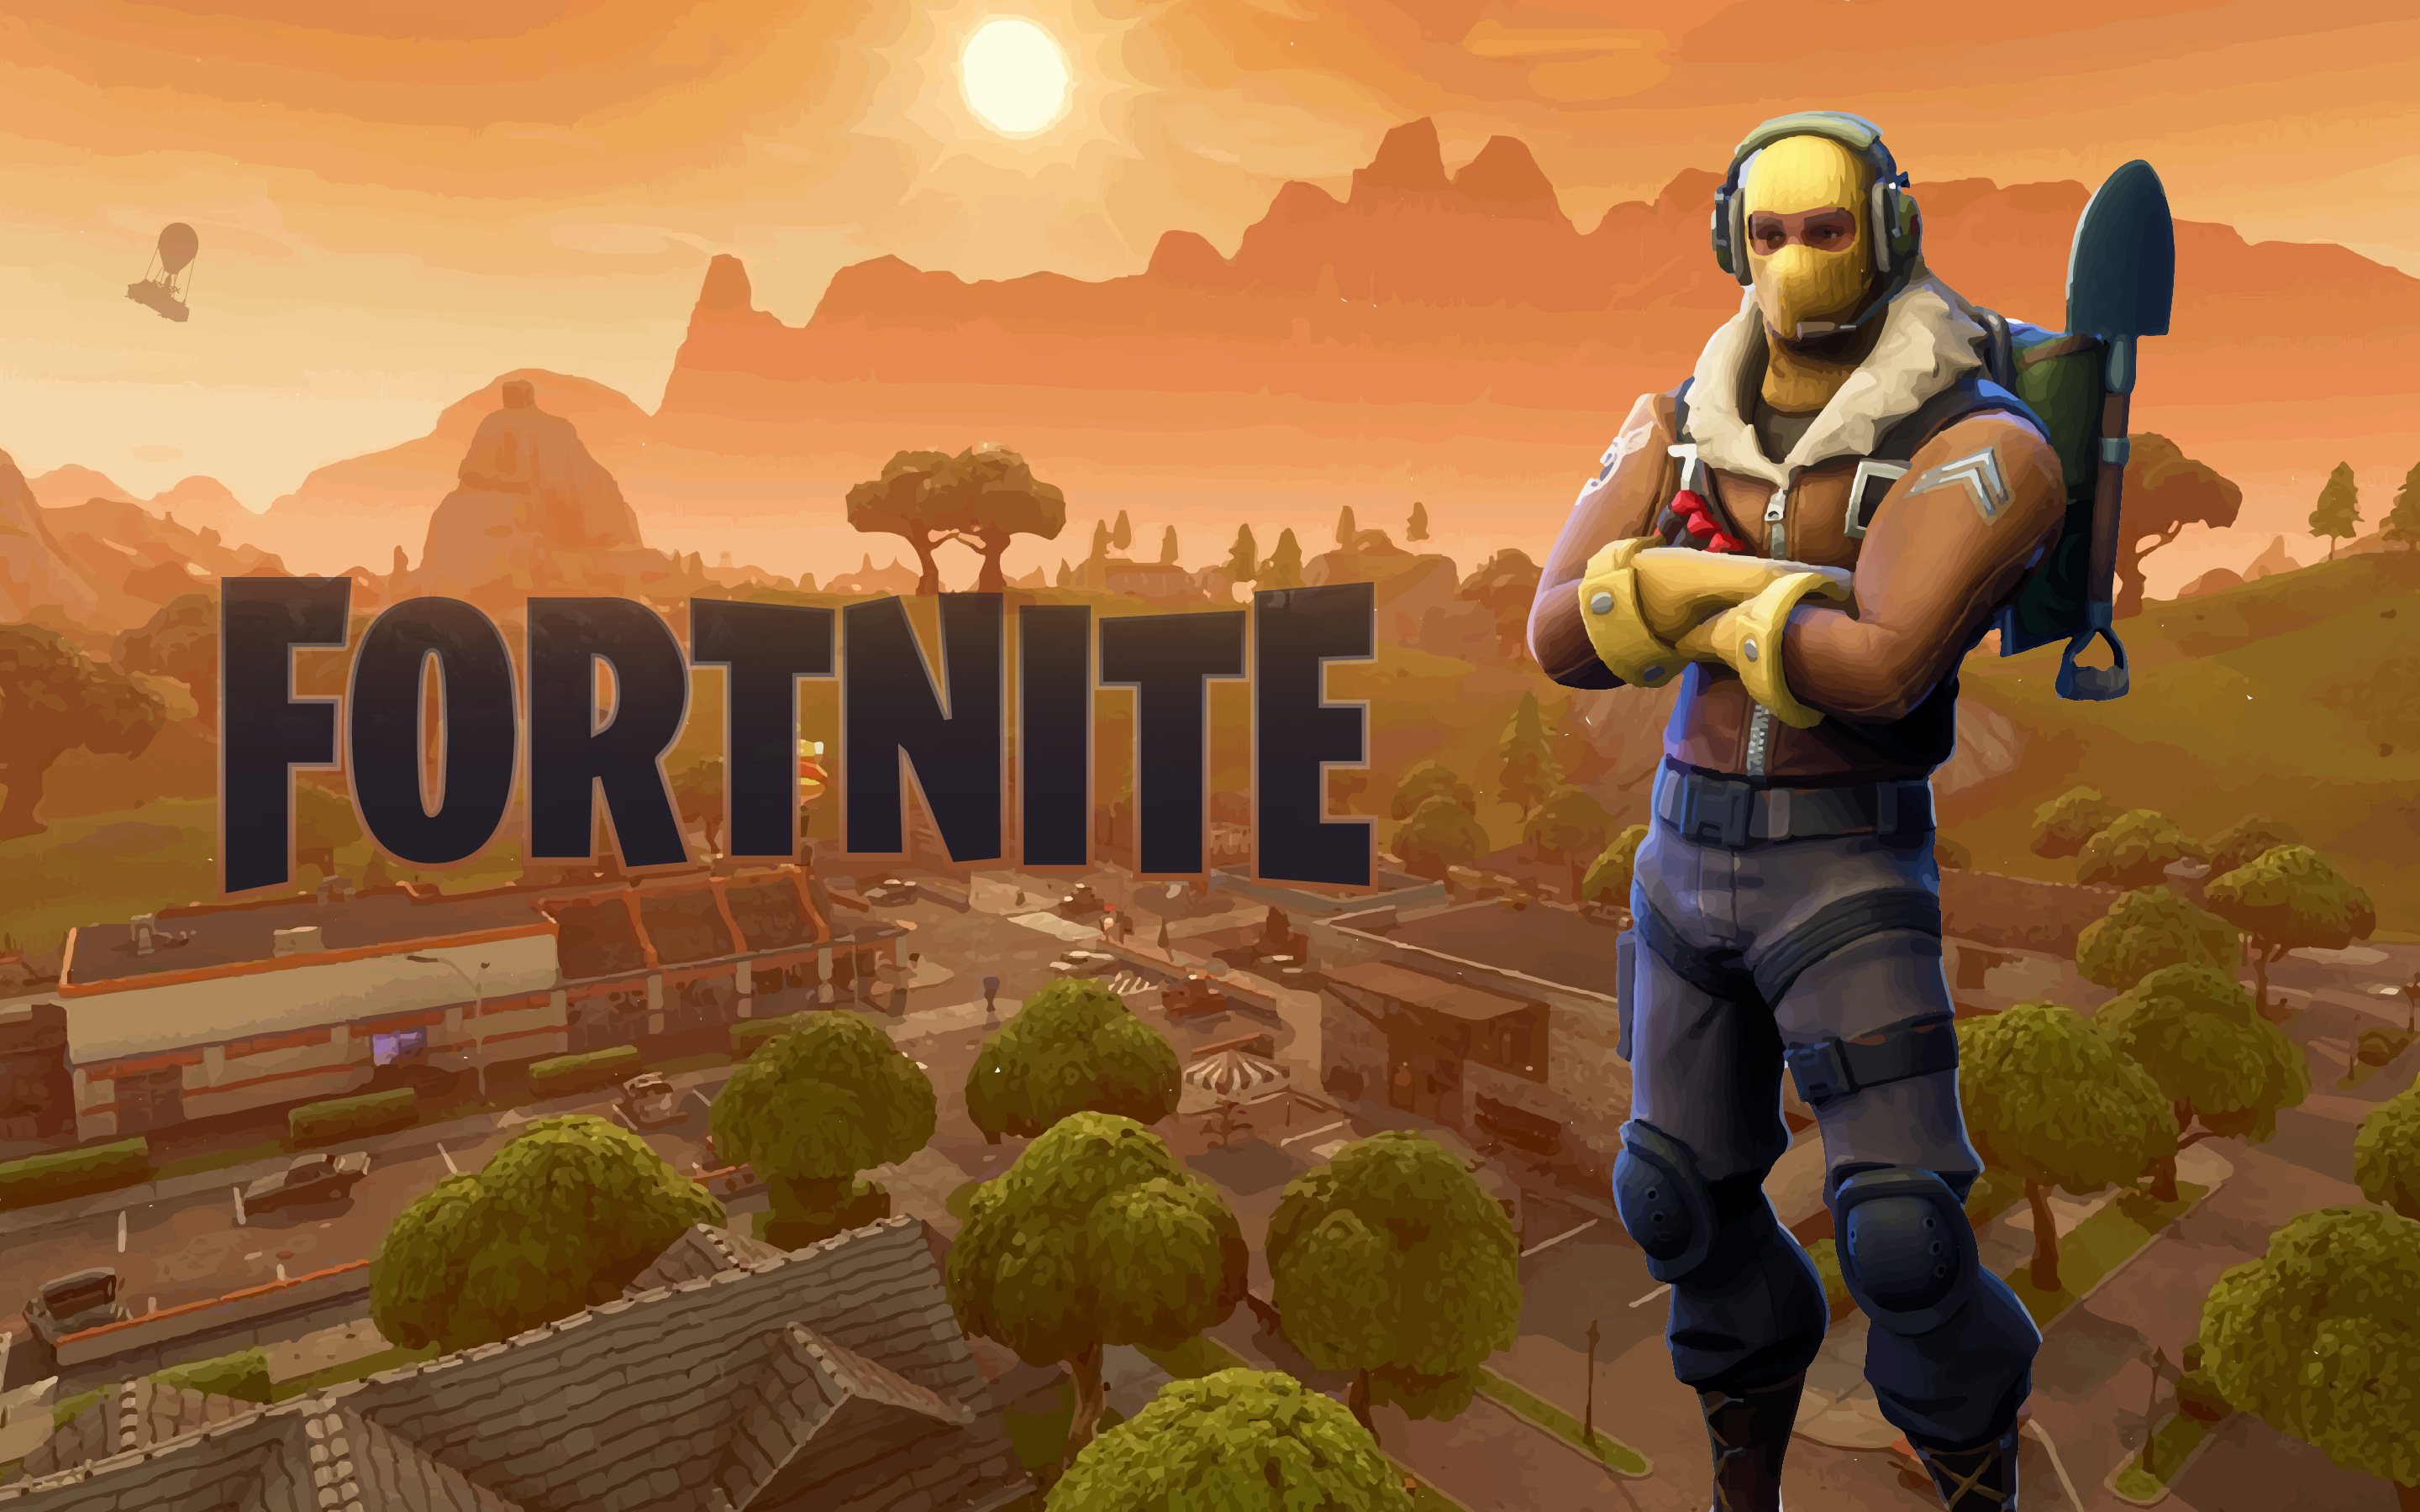 Fortnite Full HD Wallpaper and Background Image  2880x1800  ID:917875